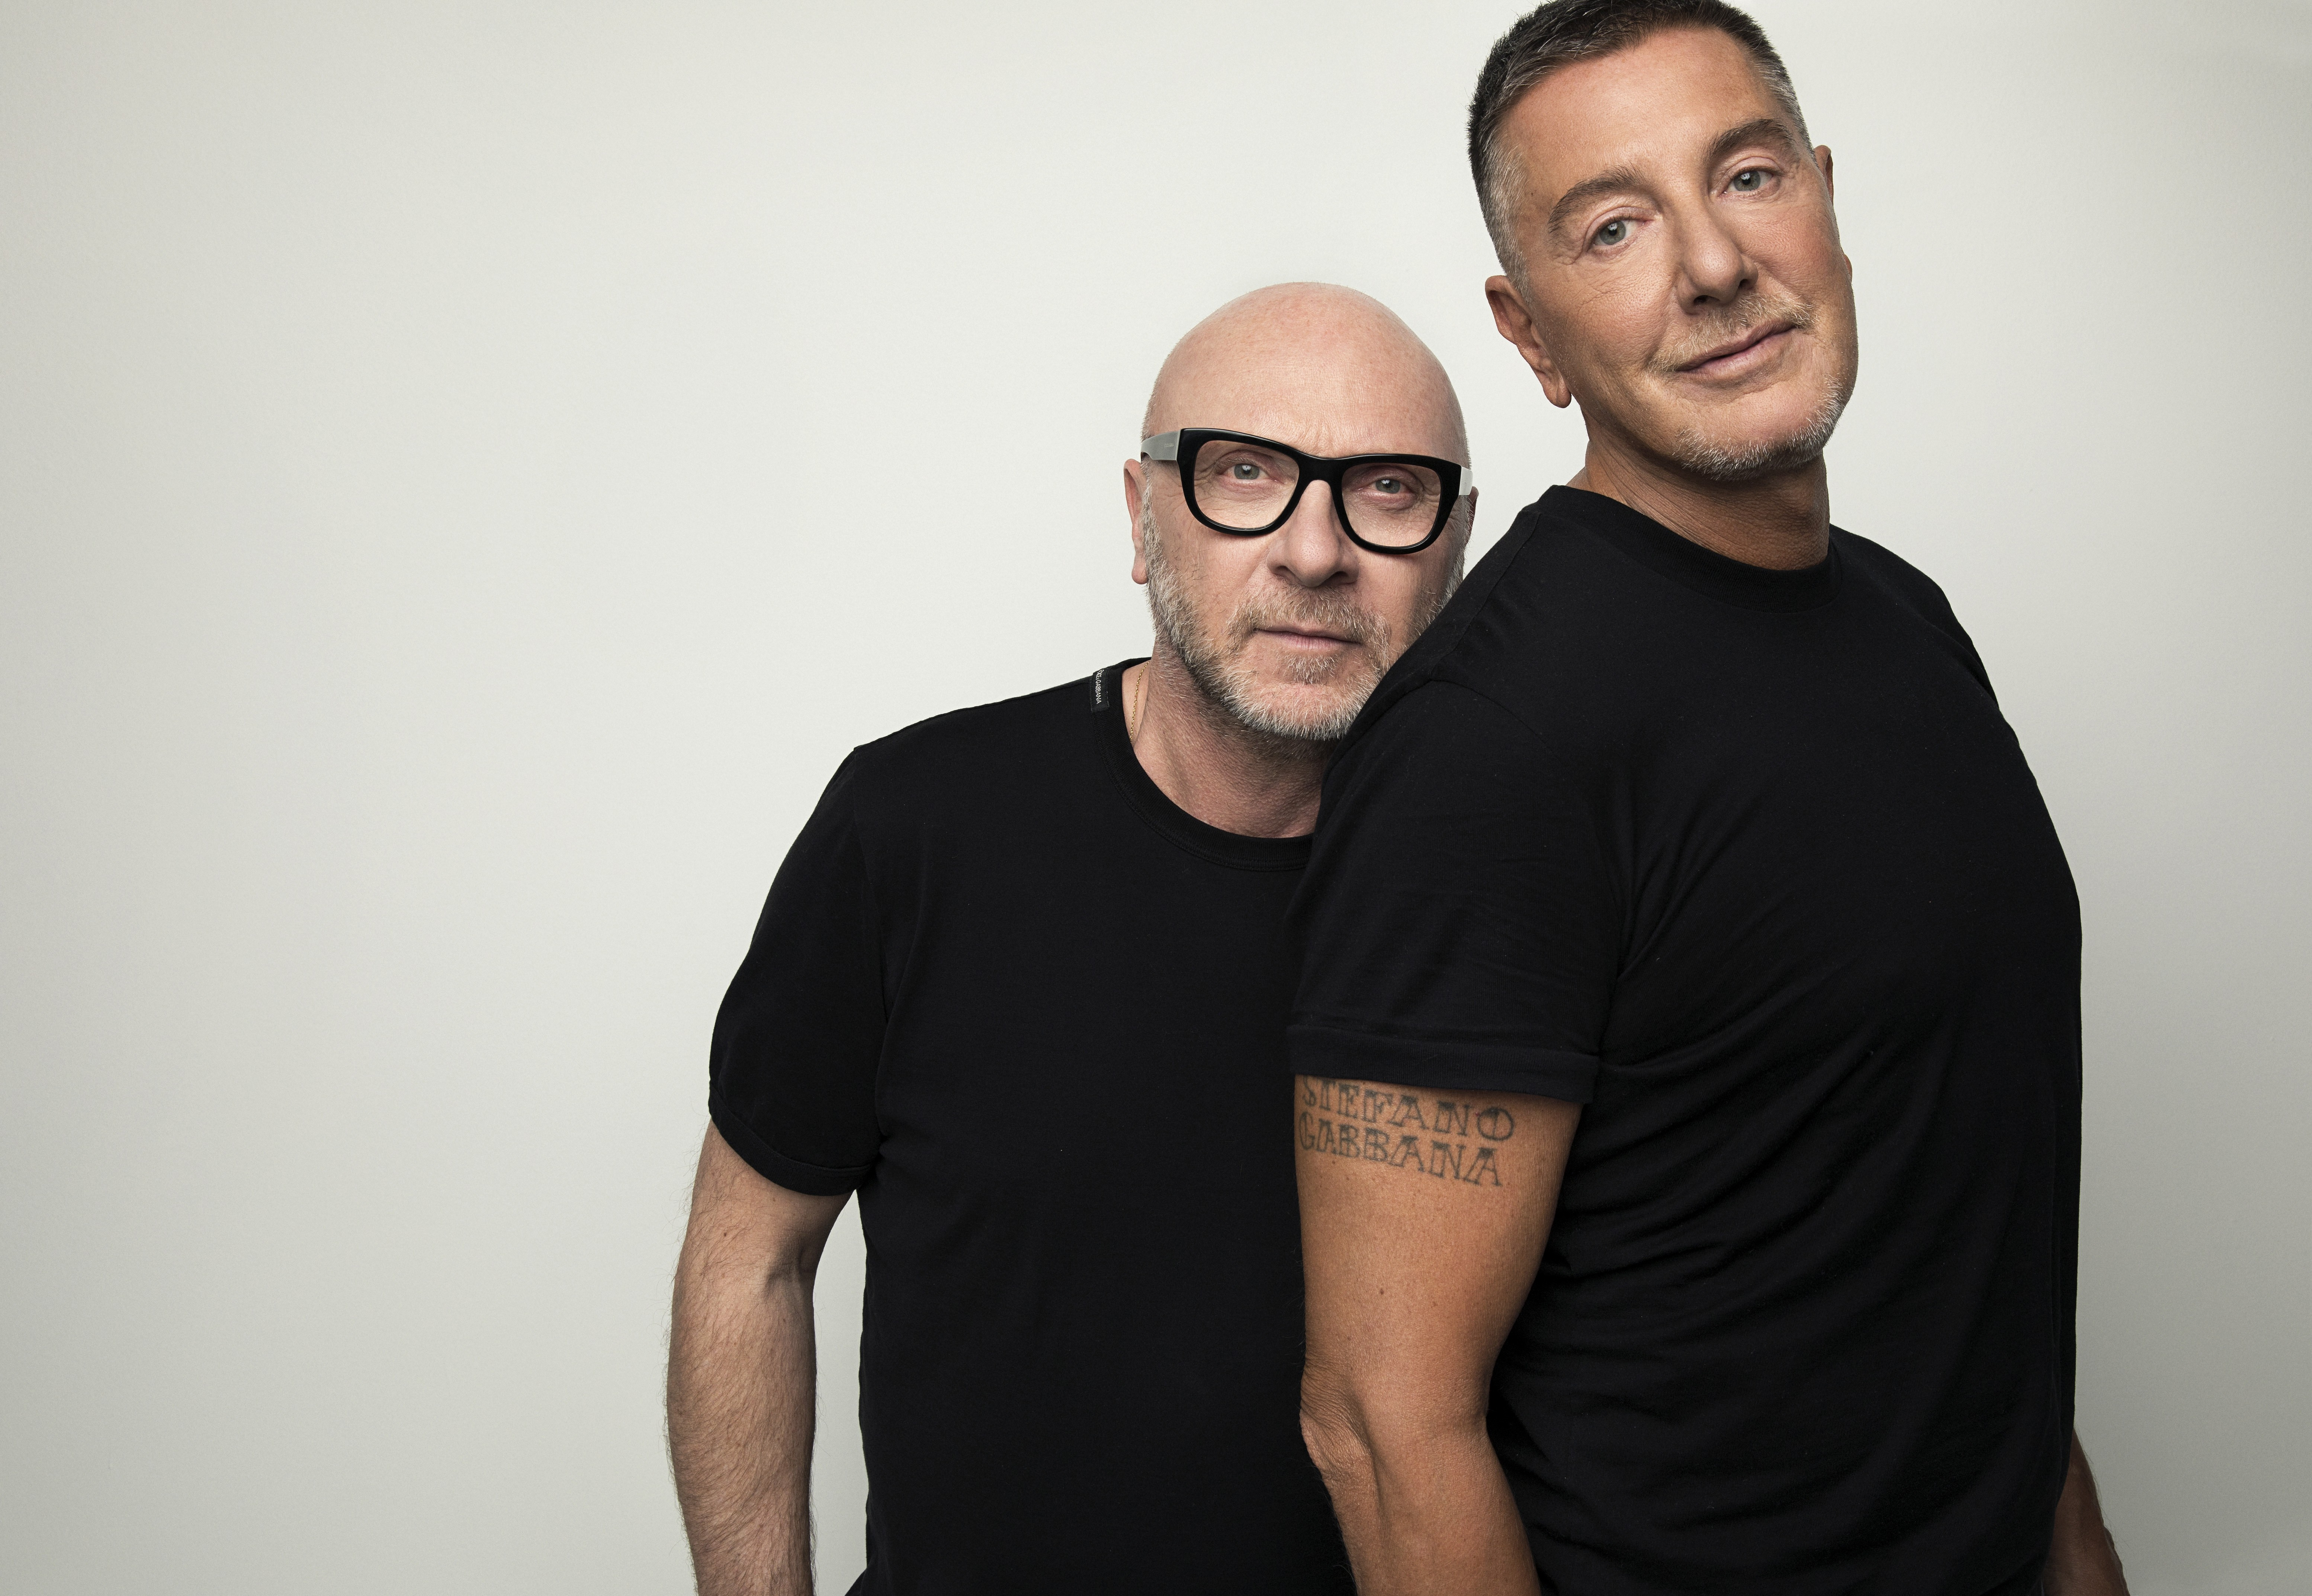 13208e896b1f Politically incorrect Dolce and Gabbana stay unrepentant as they target  world's ultra rich | South China Morning Post